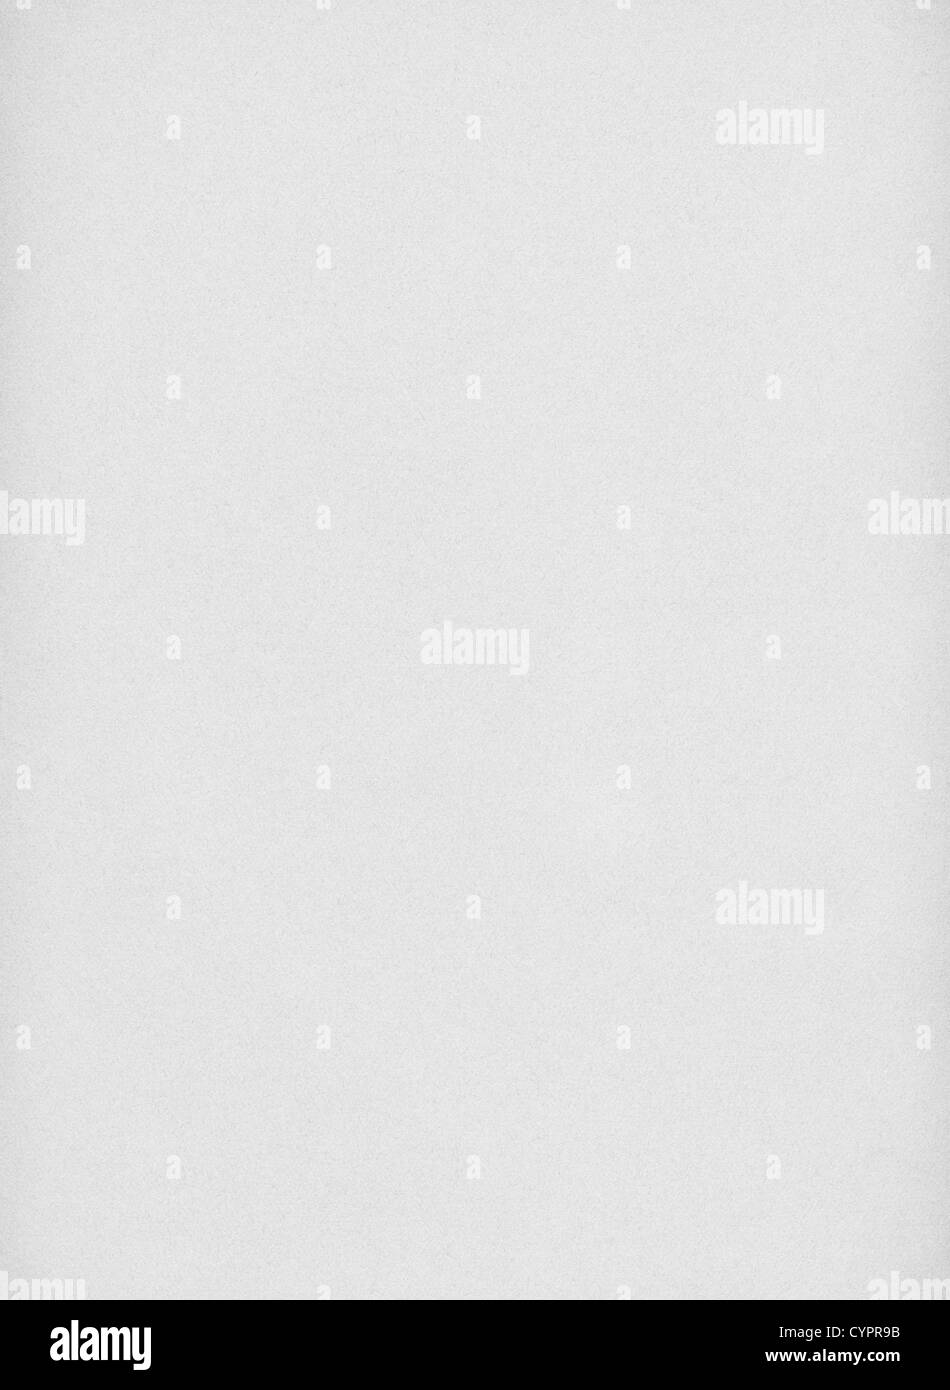 Seamless gray paper texture - Stock Image